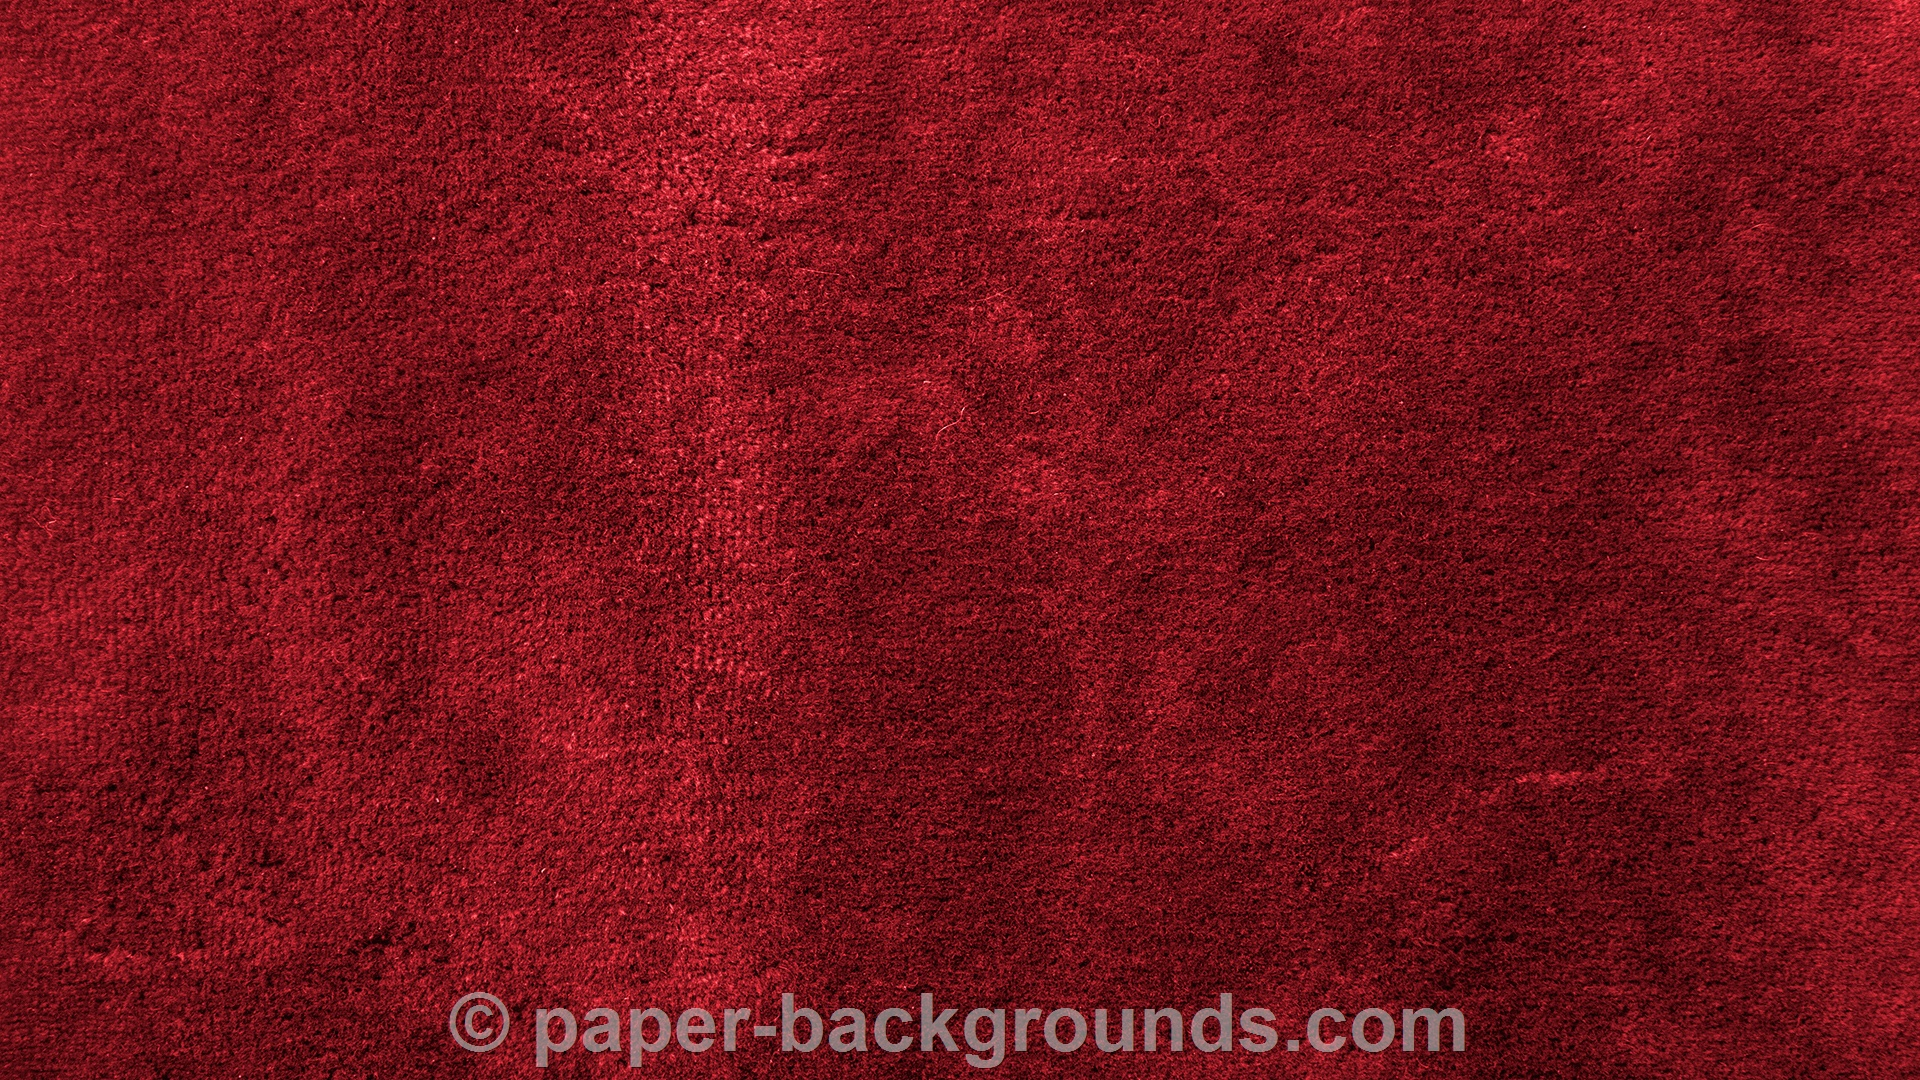 Red Velvet Texture Background HD